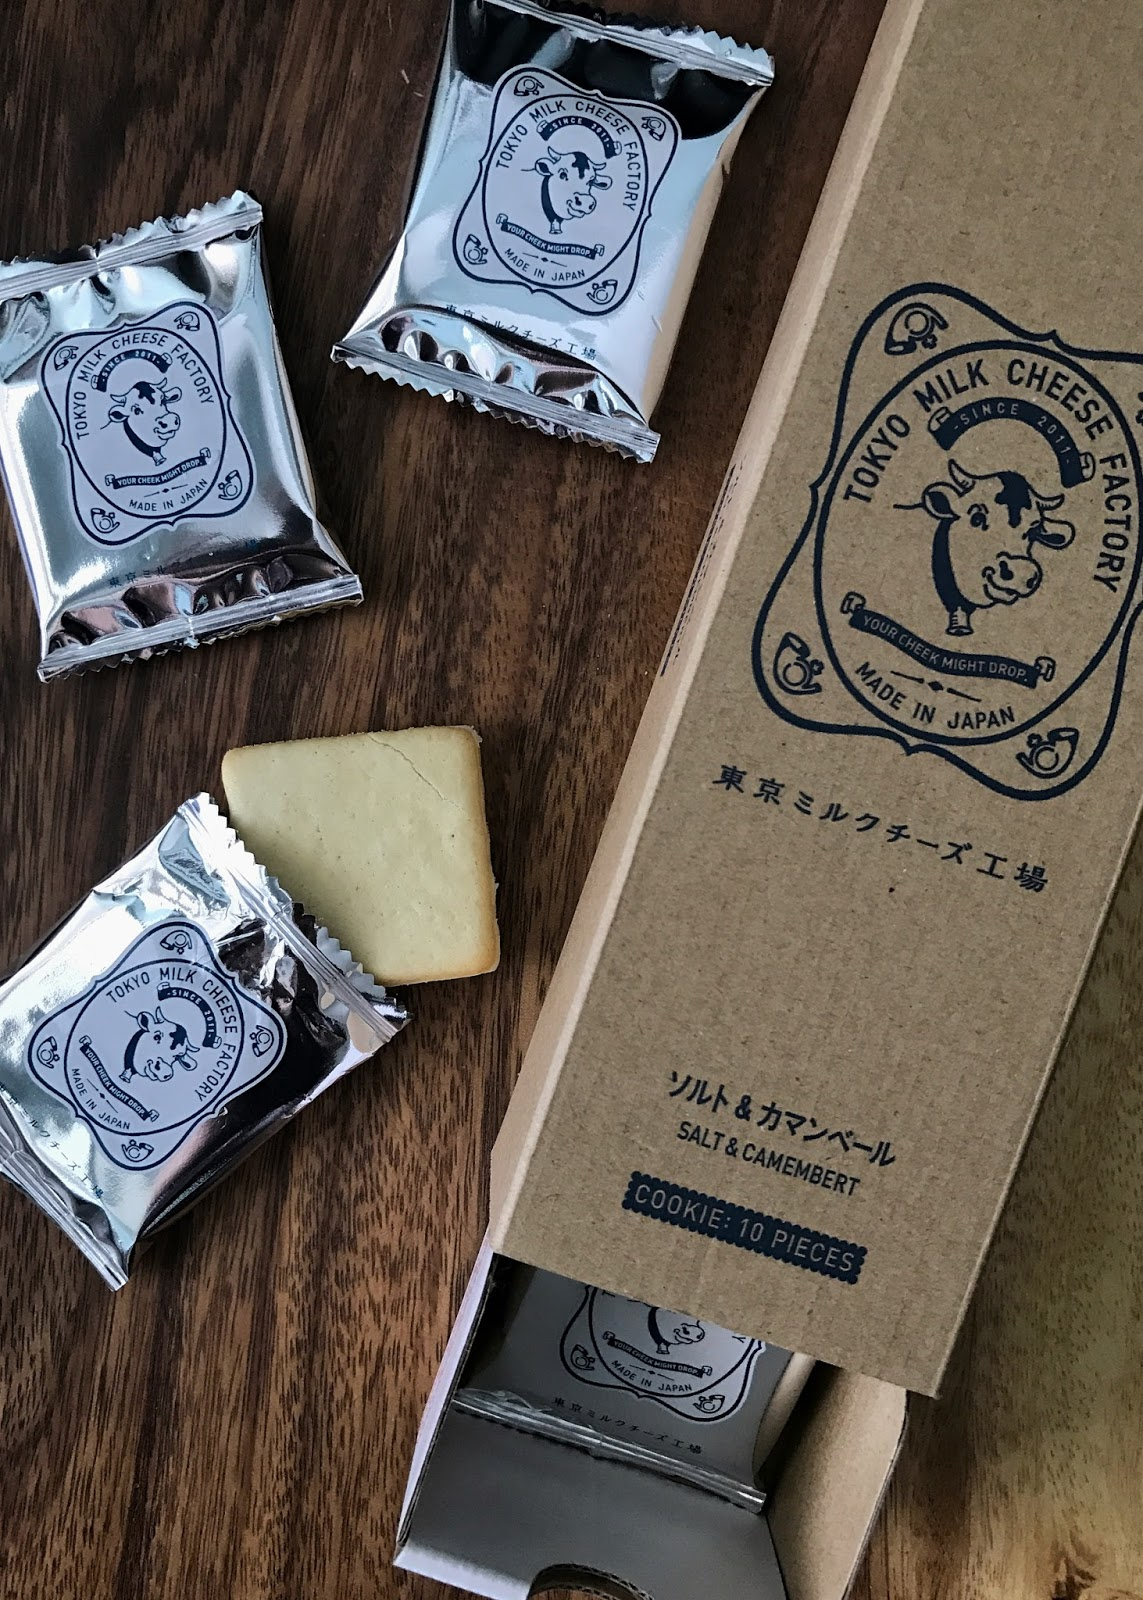 What Mary Loves: A Cheesy Affair: Tokyo Milk Cheese Factory